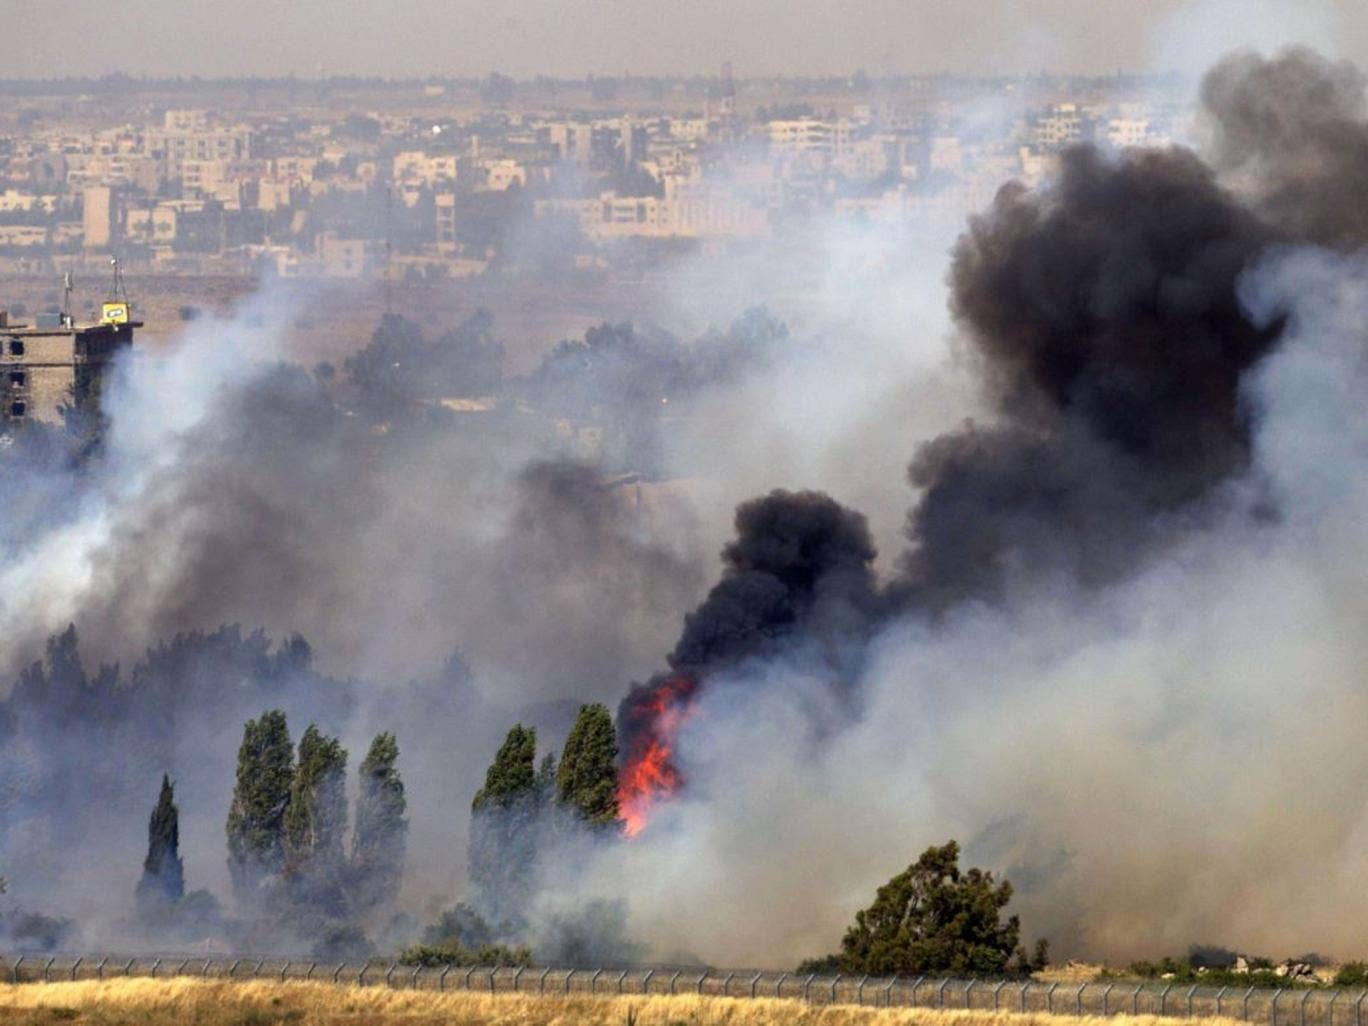 A picture taken on June 6, 2013 from the Israeli side along the Israel-Syria ceasefire line in the Golan Heights shows smoke billowing from a fire caused by clashes between Syrian rebels and forces loyal to the regime near the Quneitra crossing